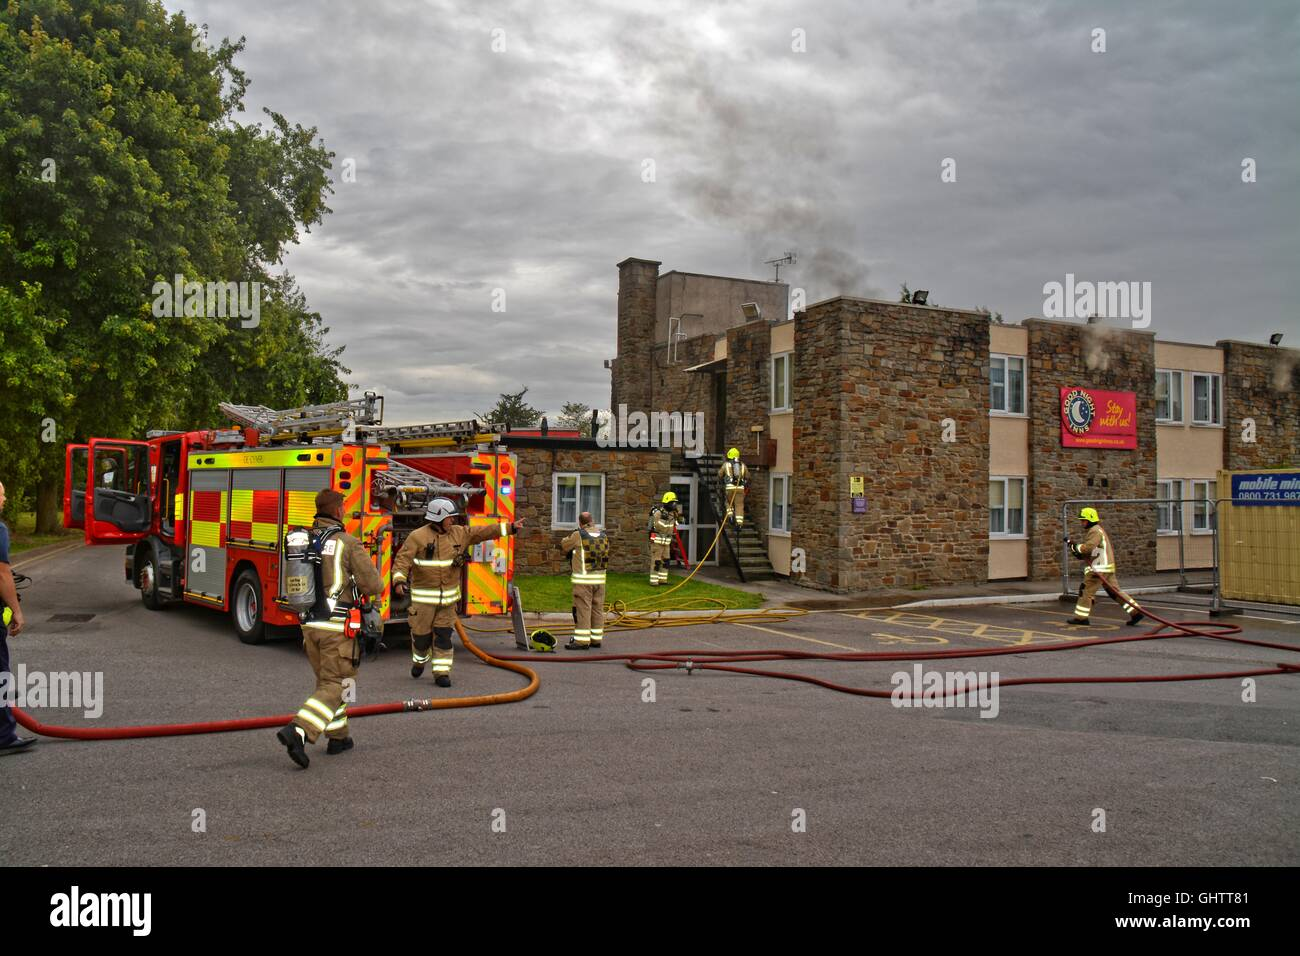 Newport, UK. 10th Aug, 2016. Fire outbreak at Good Night Inns Hotel, Newport - 2.50pm; Newport, Hotel Fire, Good - Stock Image